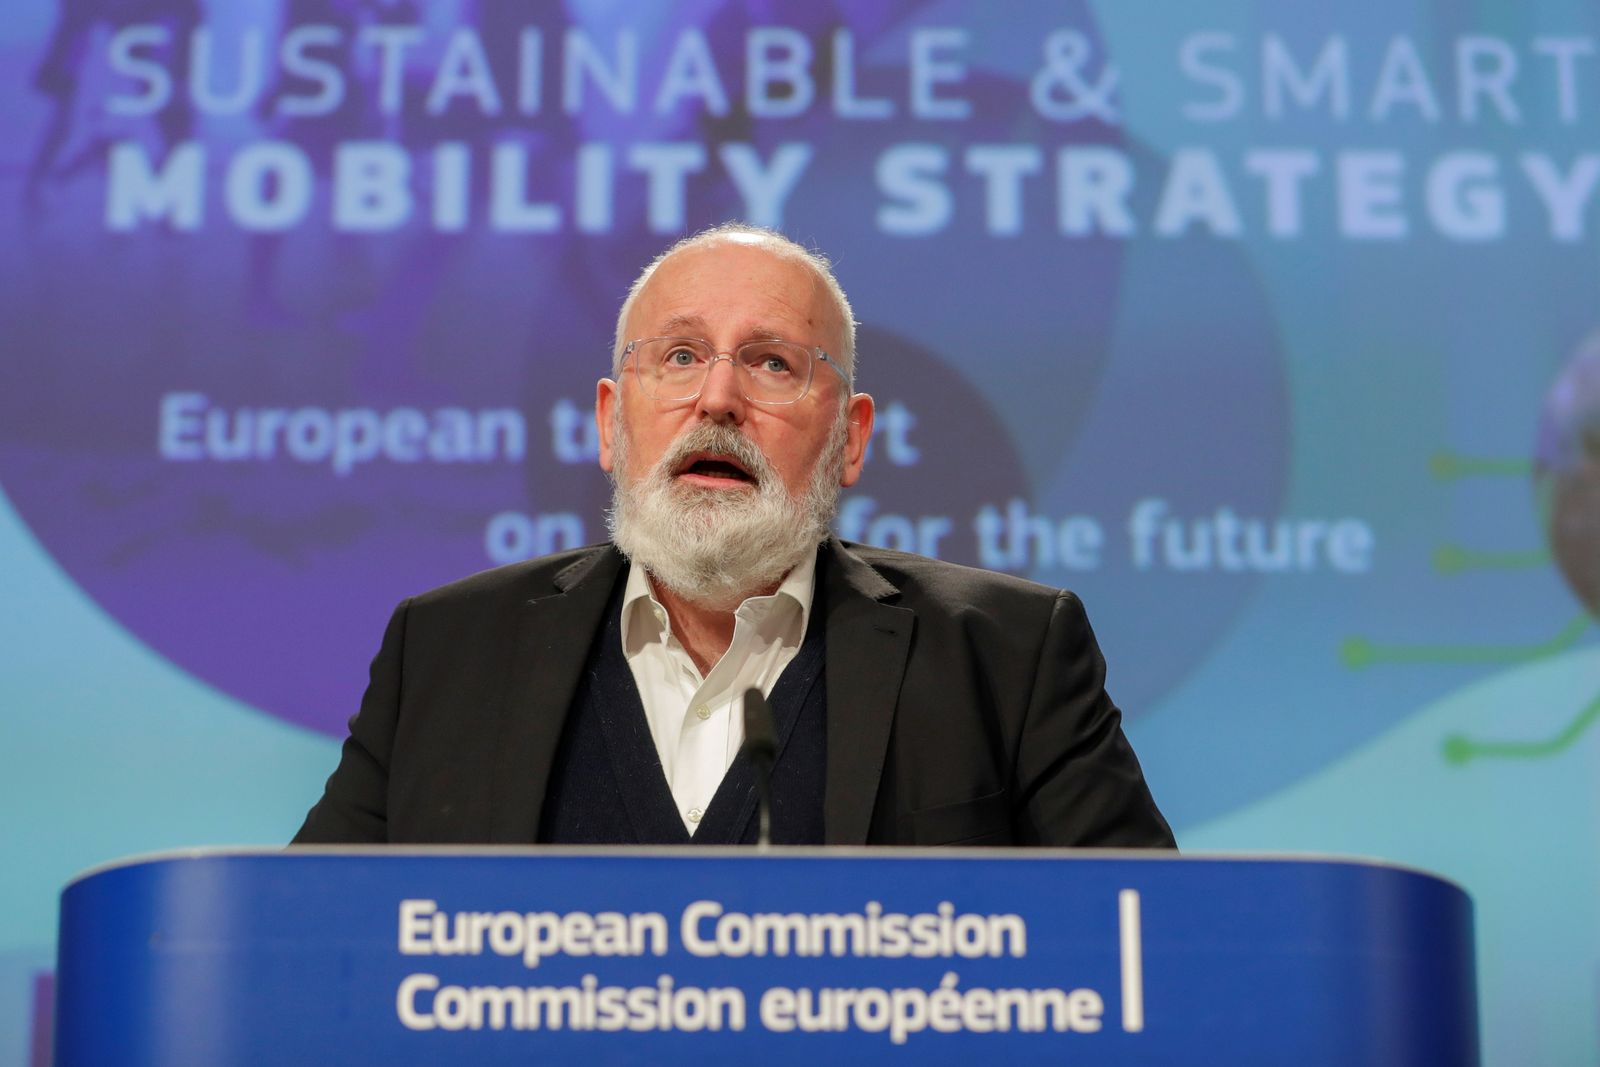 News conference presenting the bloc's strategy for sustainable and smart mobility in Brussels